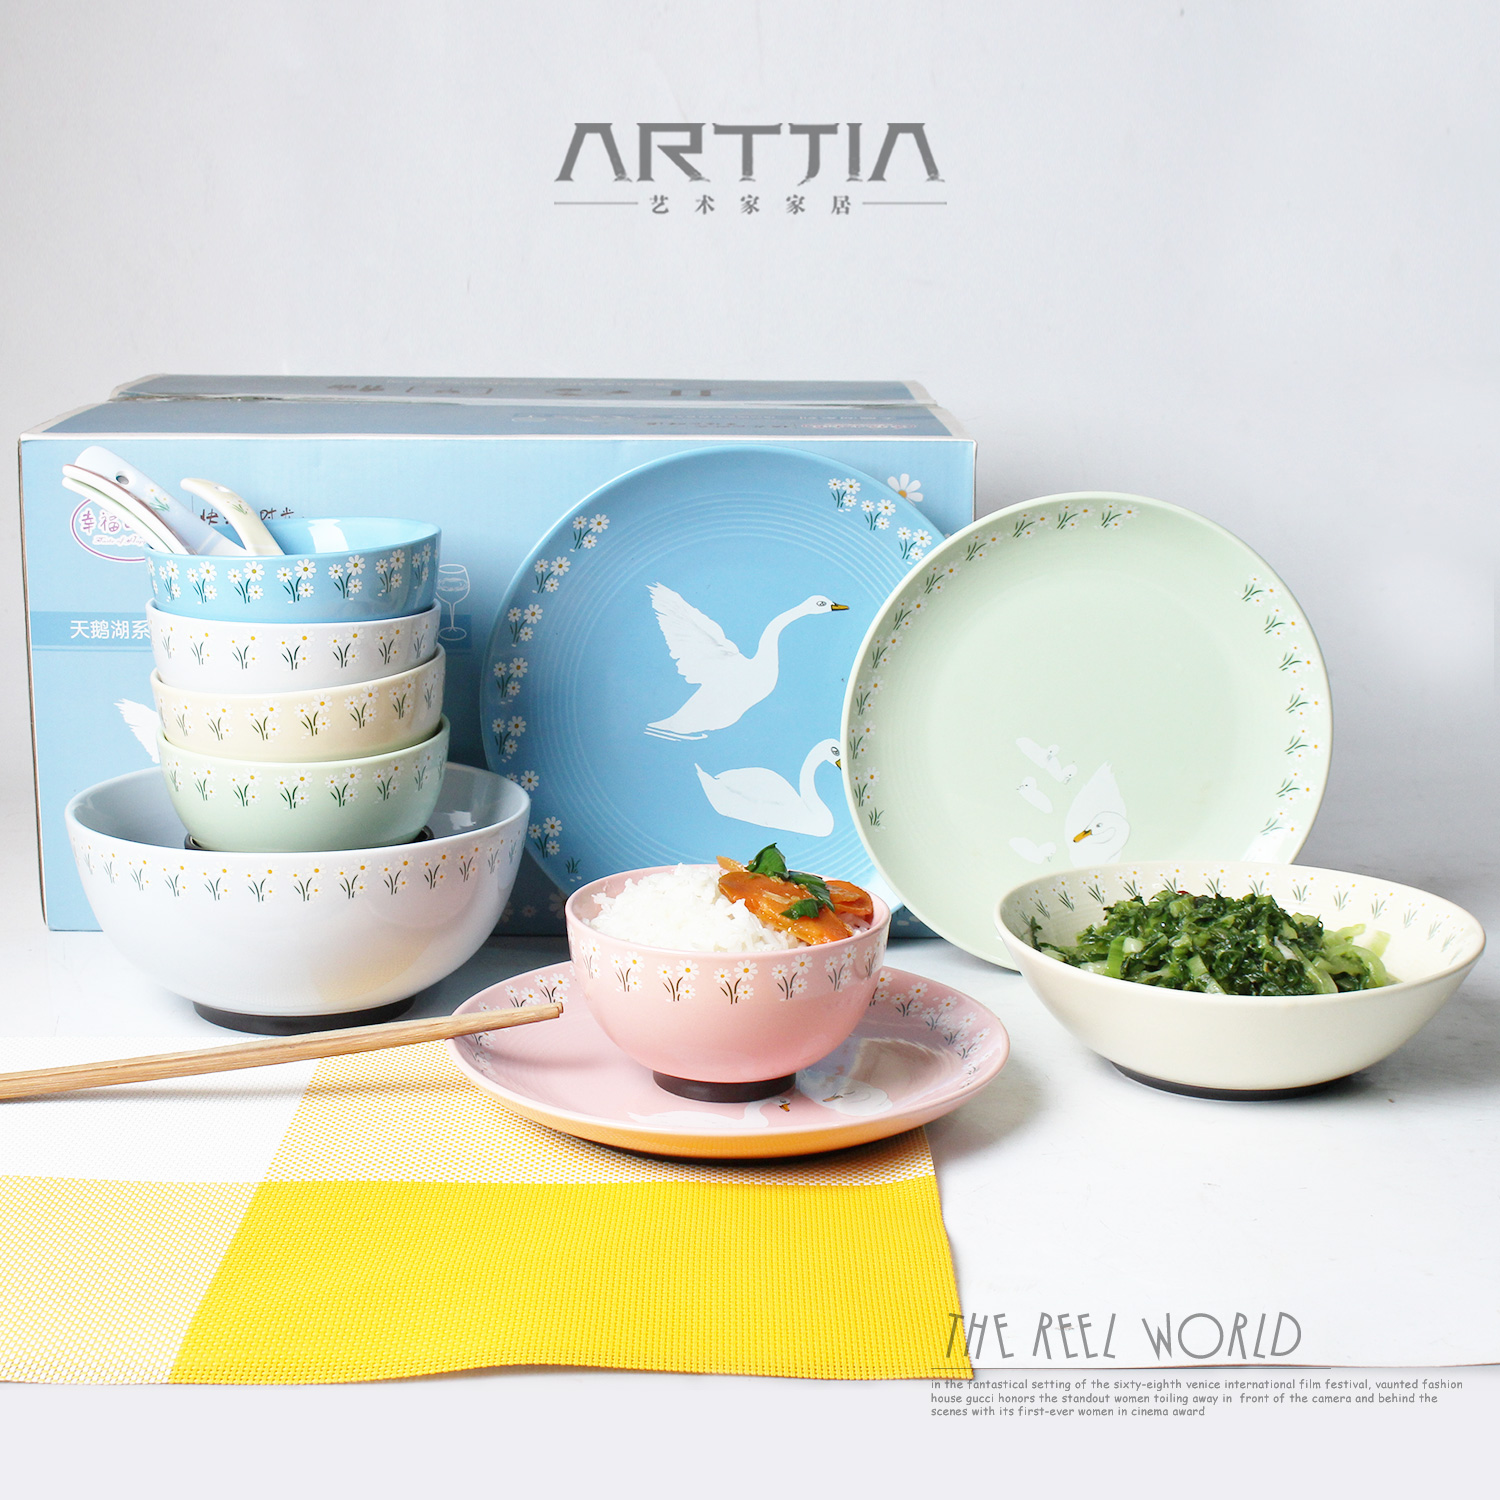 15 pcs candy color Japanese style floral ceramic dinnerware set-in Dinnerware Sets from Home u0026 Garden on Aliexpress.com | Alibaba Group  sc 1 st  AliExpress.com & 15 pcs candy color Japanese style floral ceramic dinnerware set-in ...